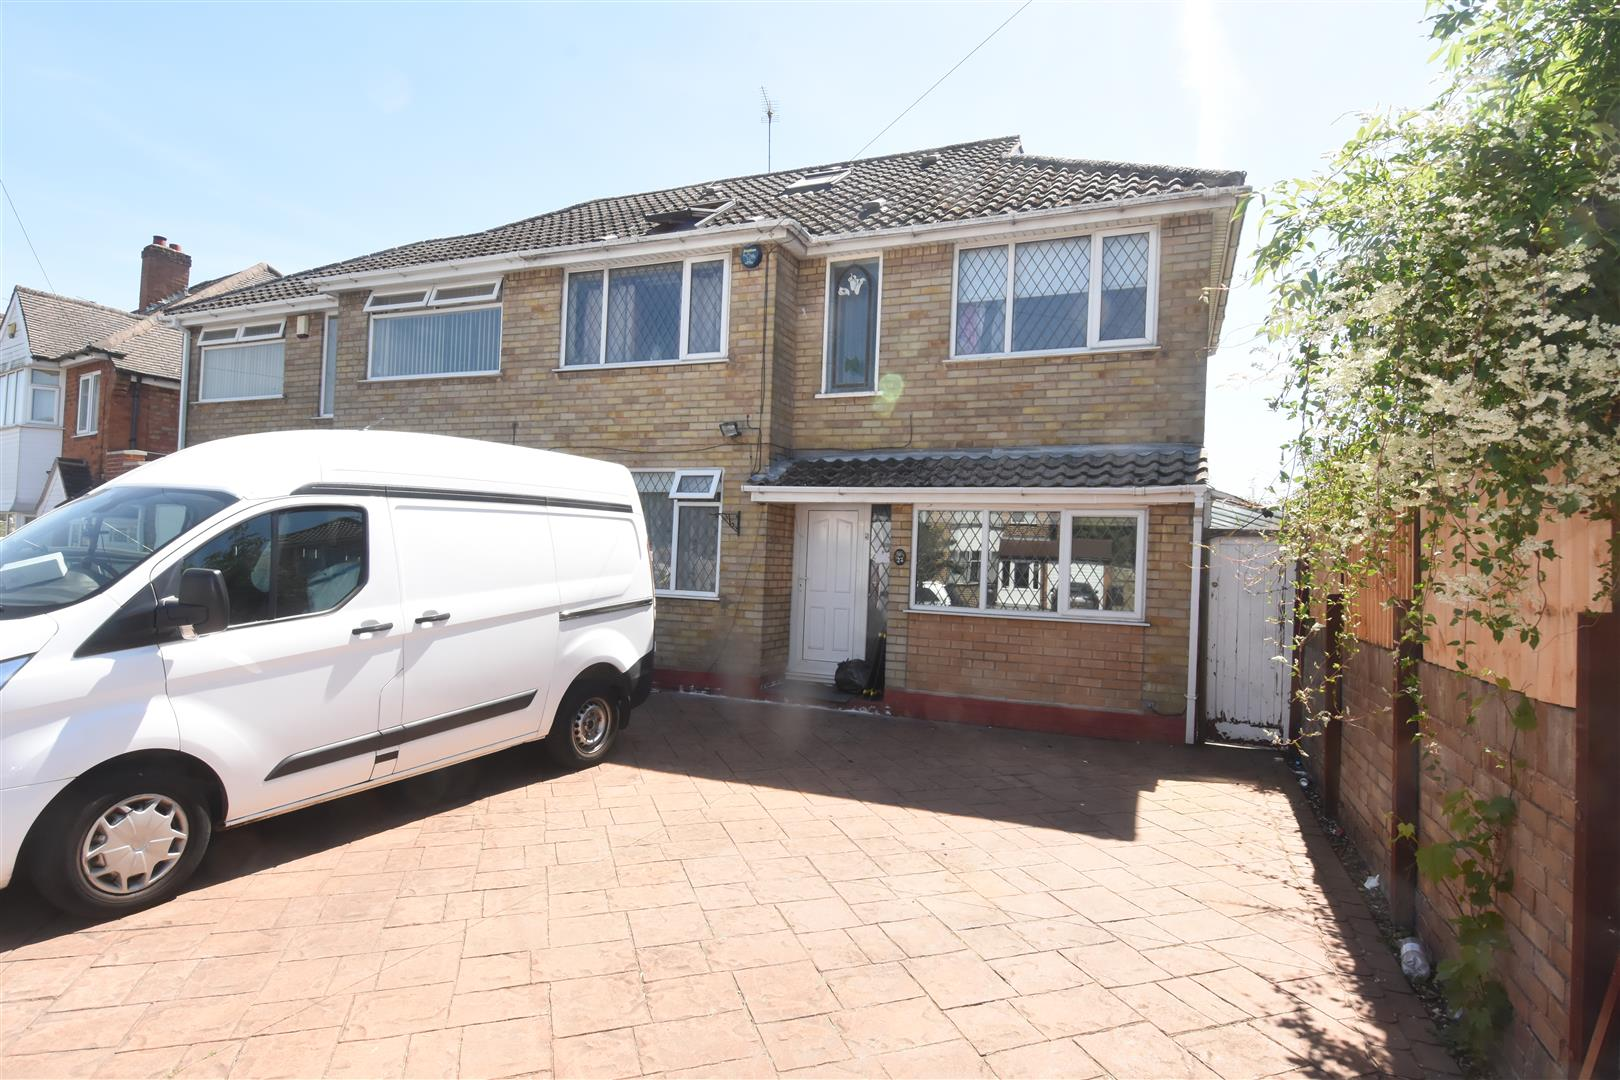 6 bed house for sale in 27 Bucklands End Lane, Hodge Hill, Birmingham, B34, B34